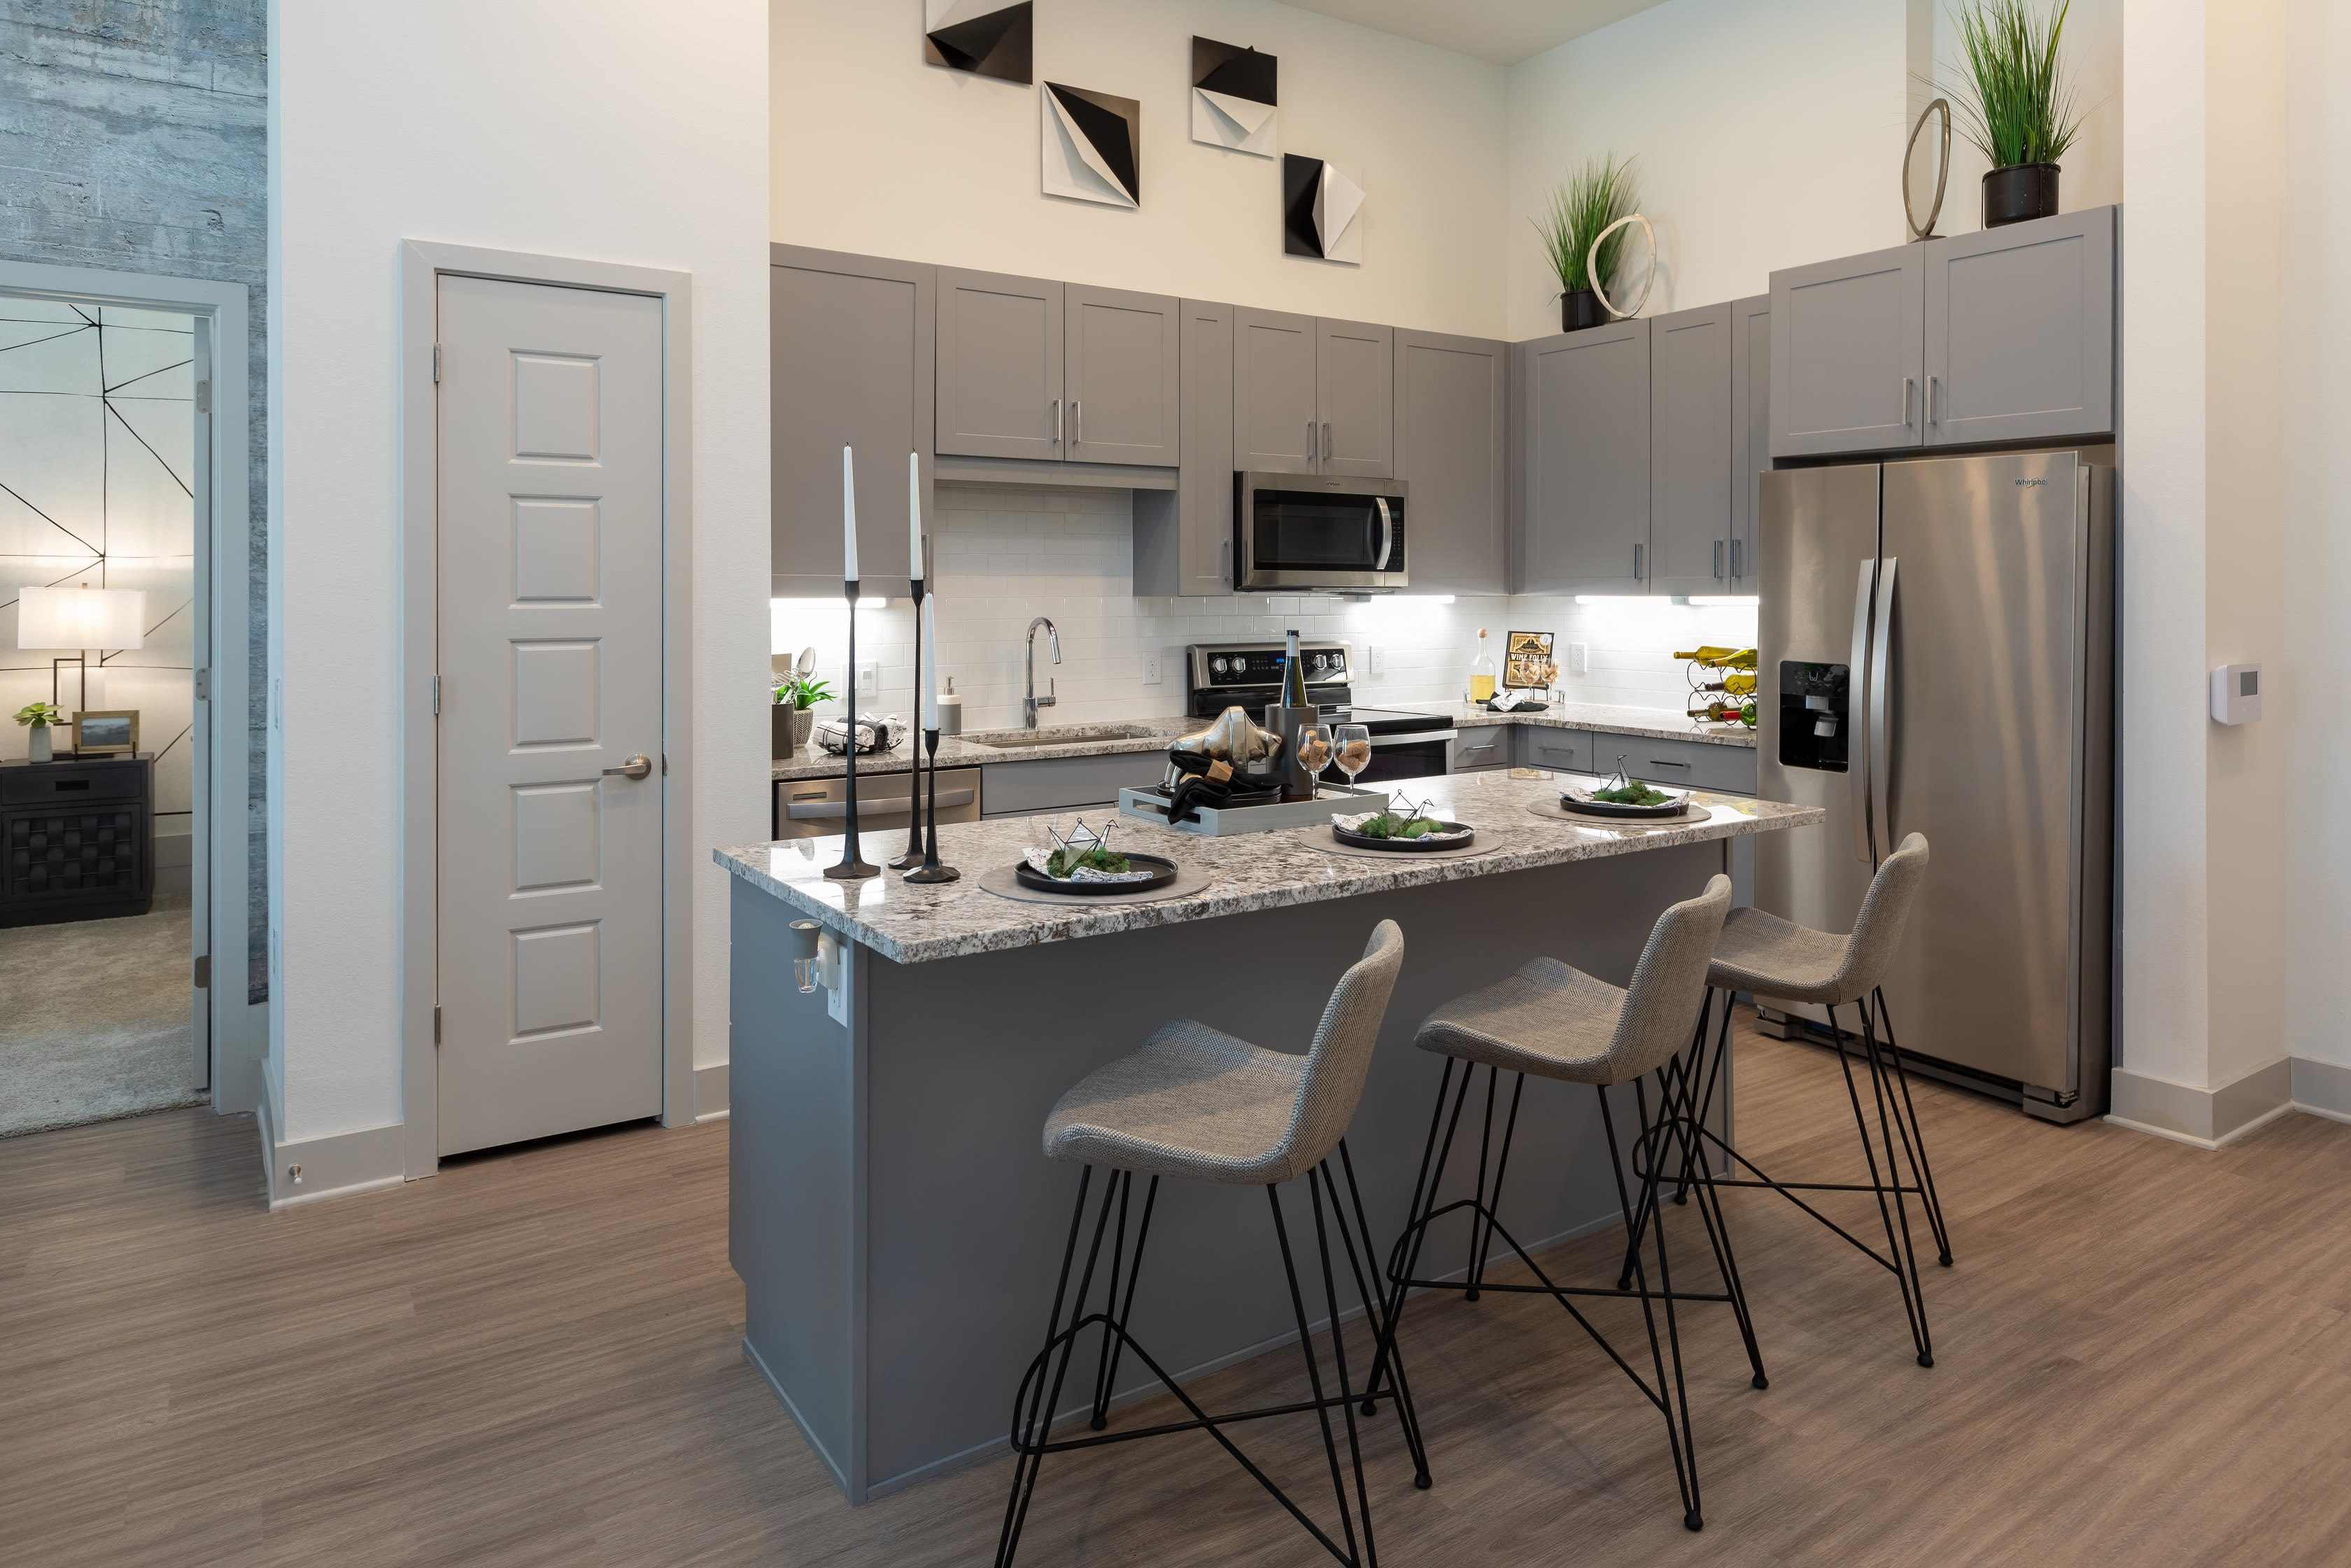 Updated kitchen in a model apartment at The ReVe in Garland, Texas